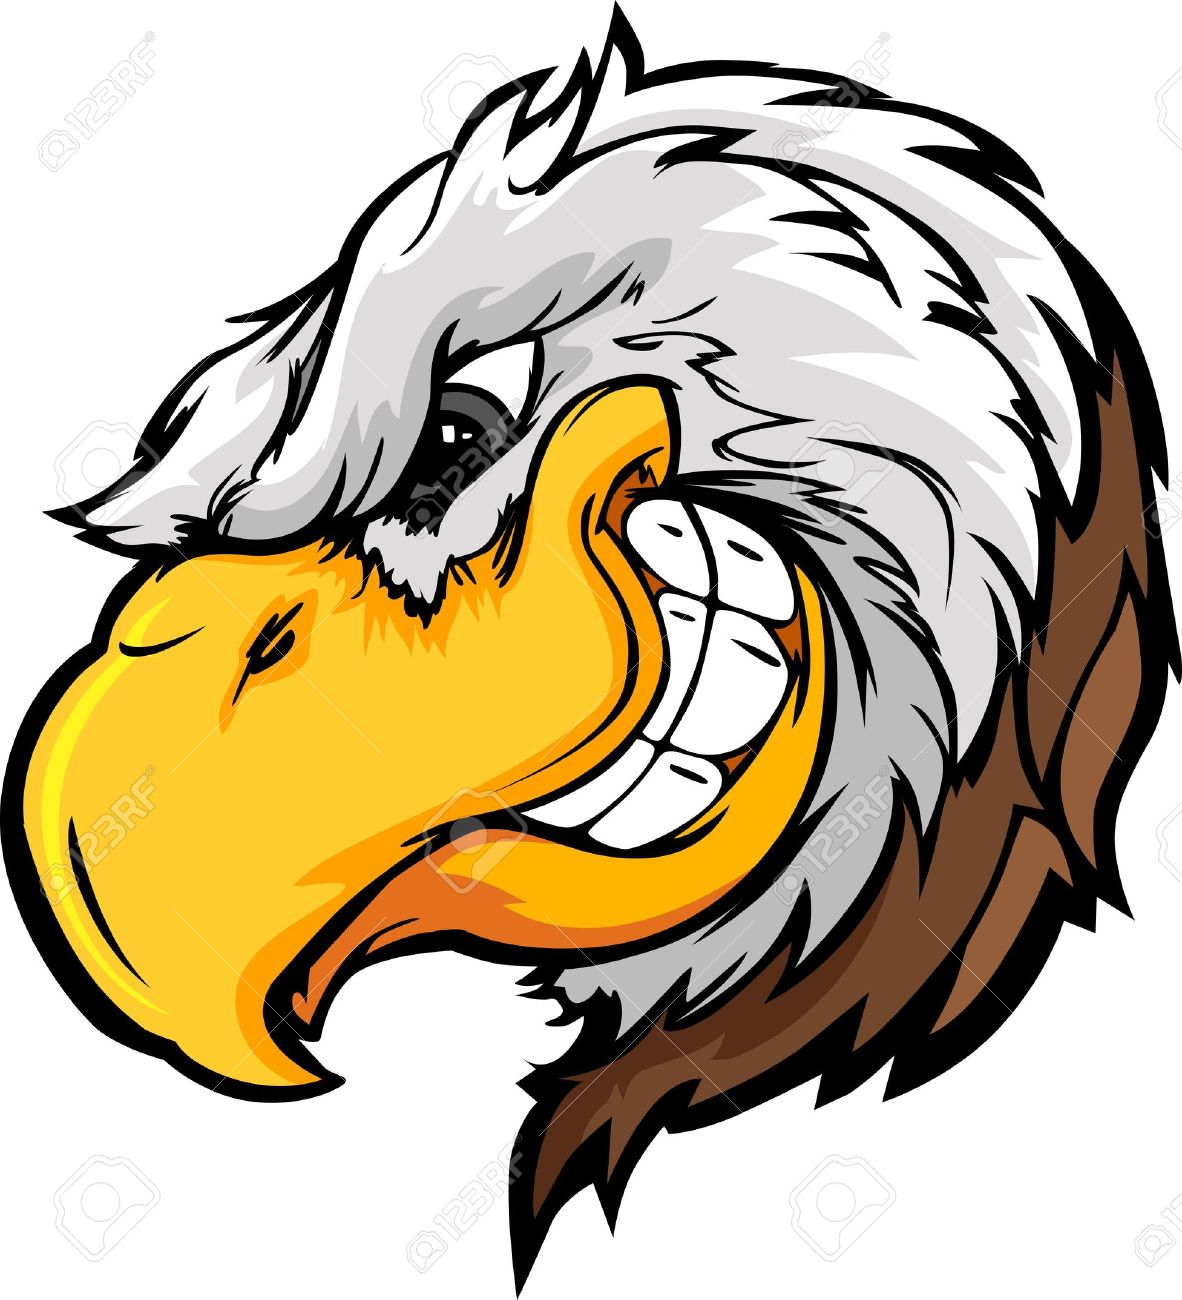 Golden Eagle clipart #9, Download drawings